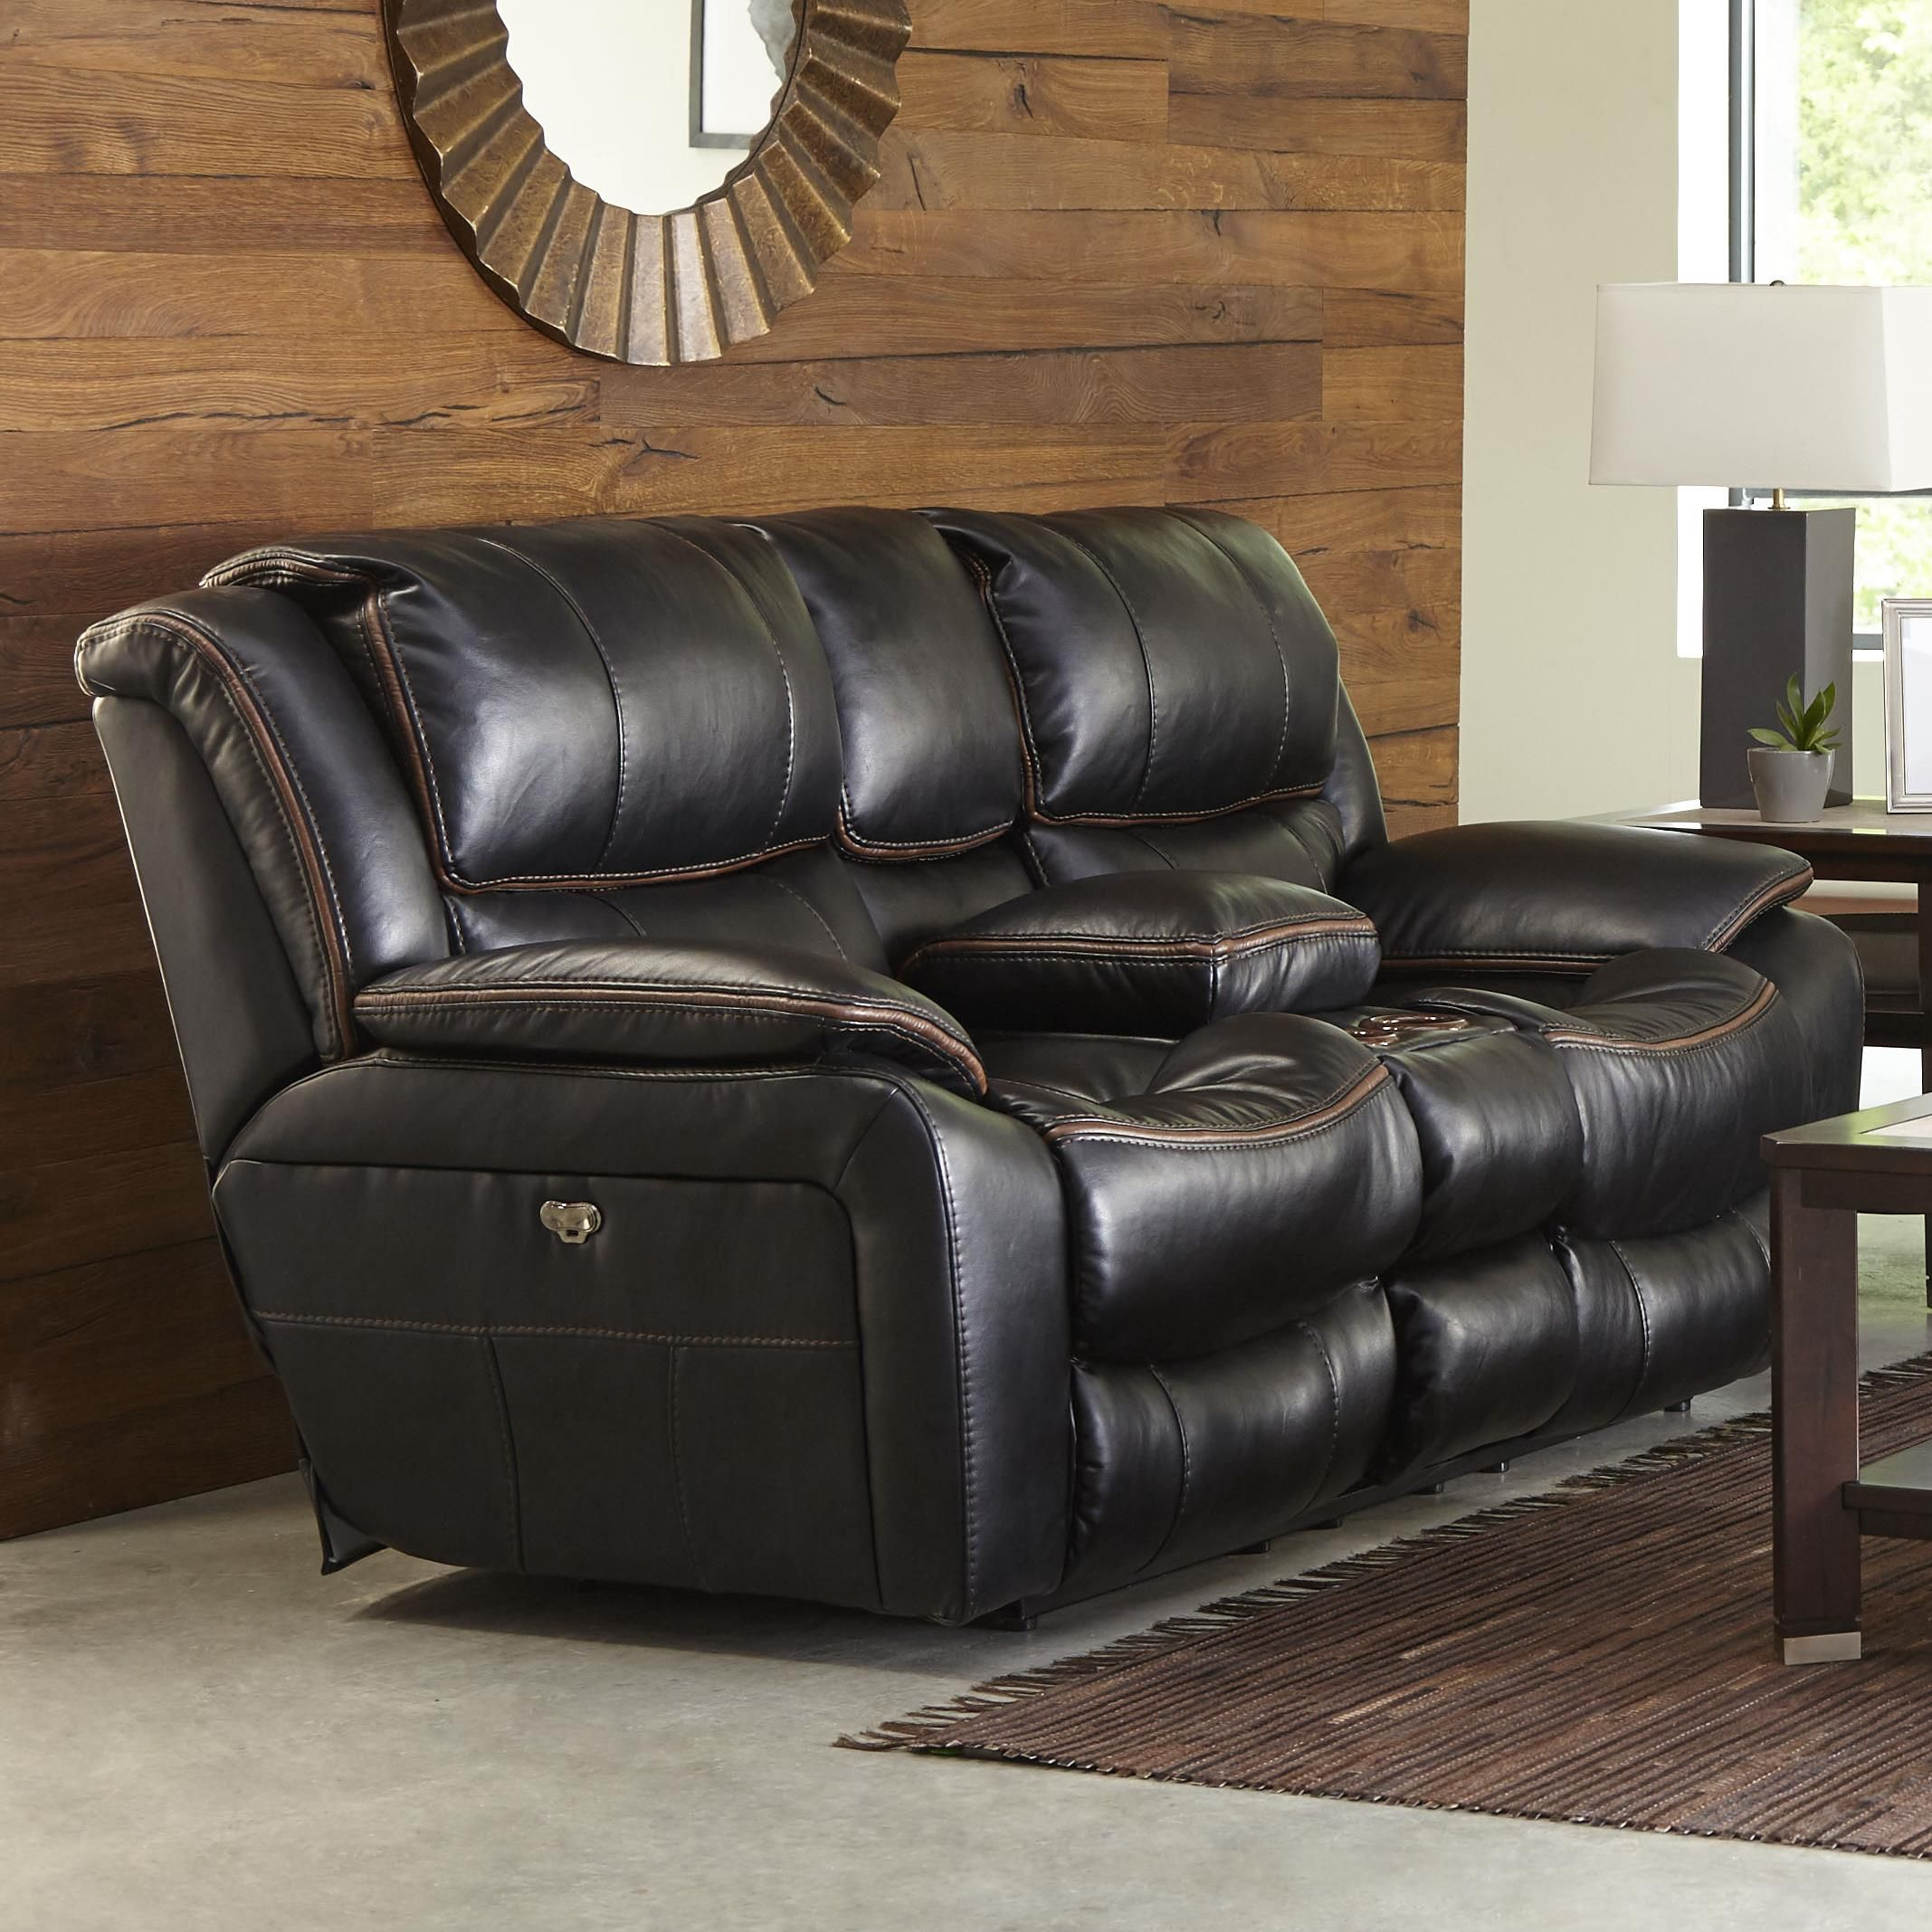 Terrific Beckett Reclining Loveseat With Usb Port By Catnapper Pabps2019 Chair Design Images Pabps2019Com